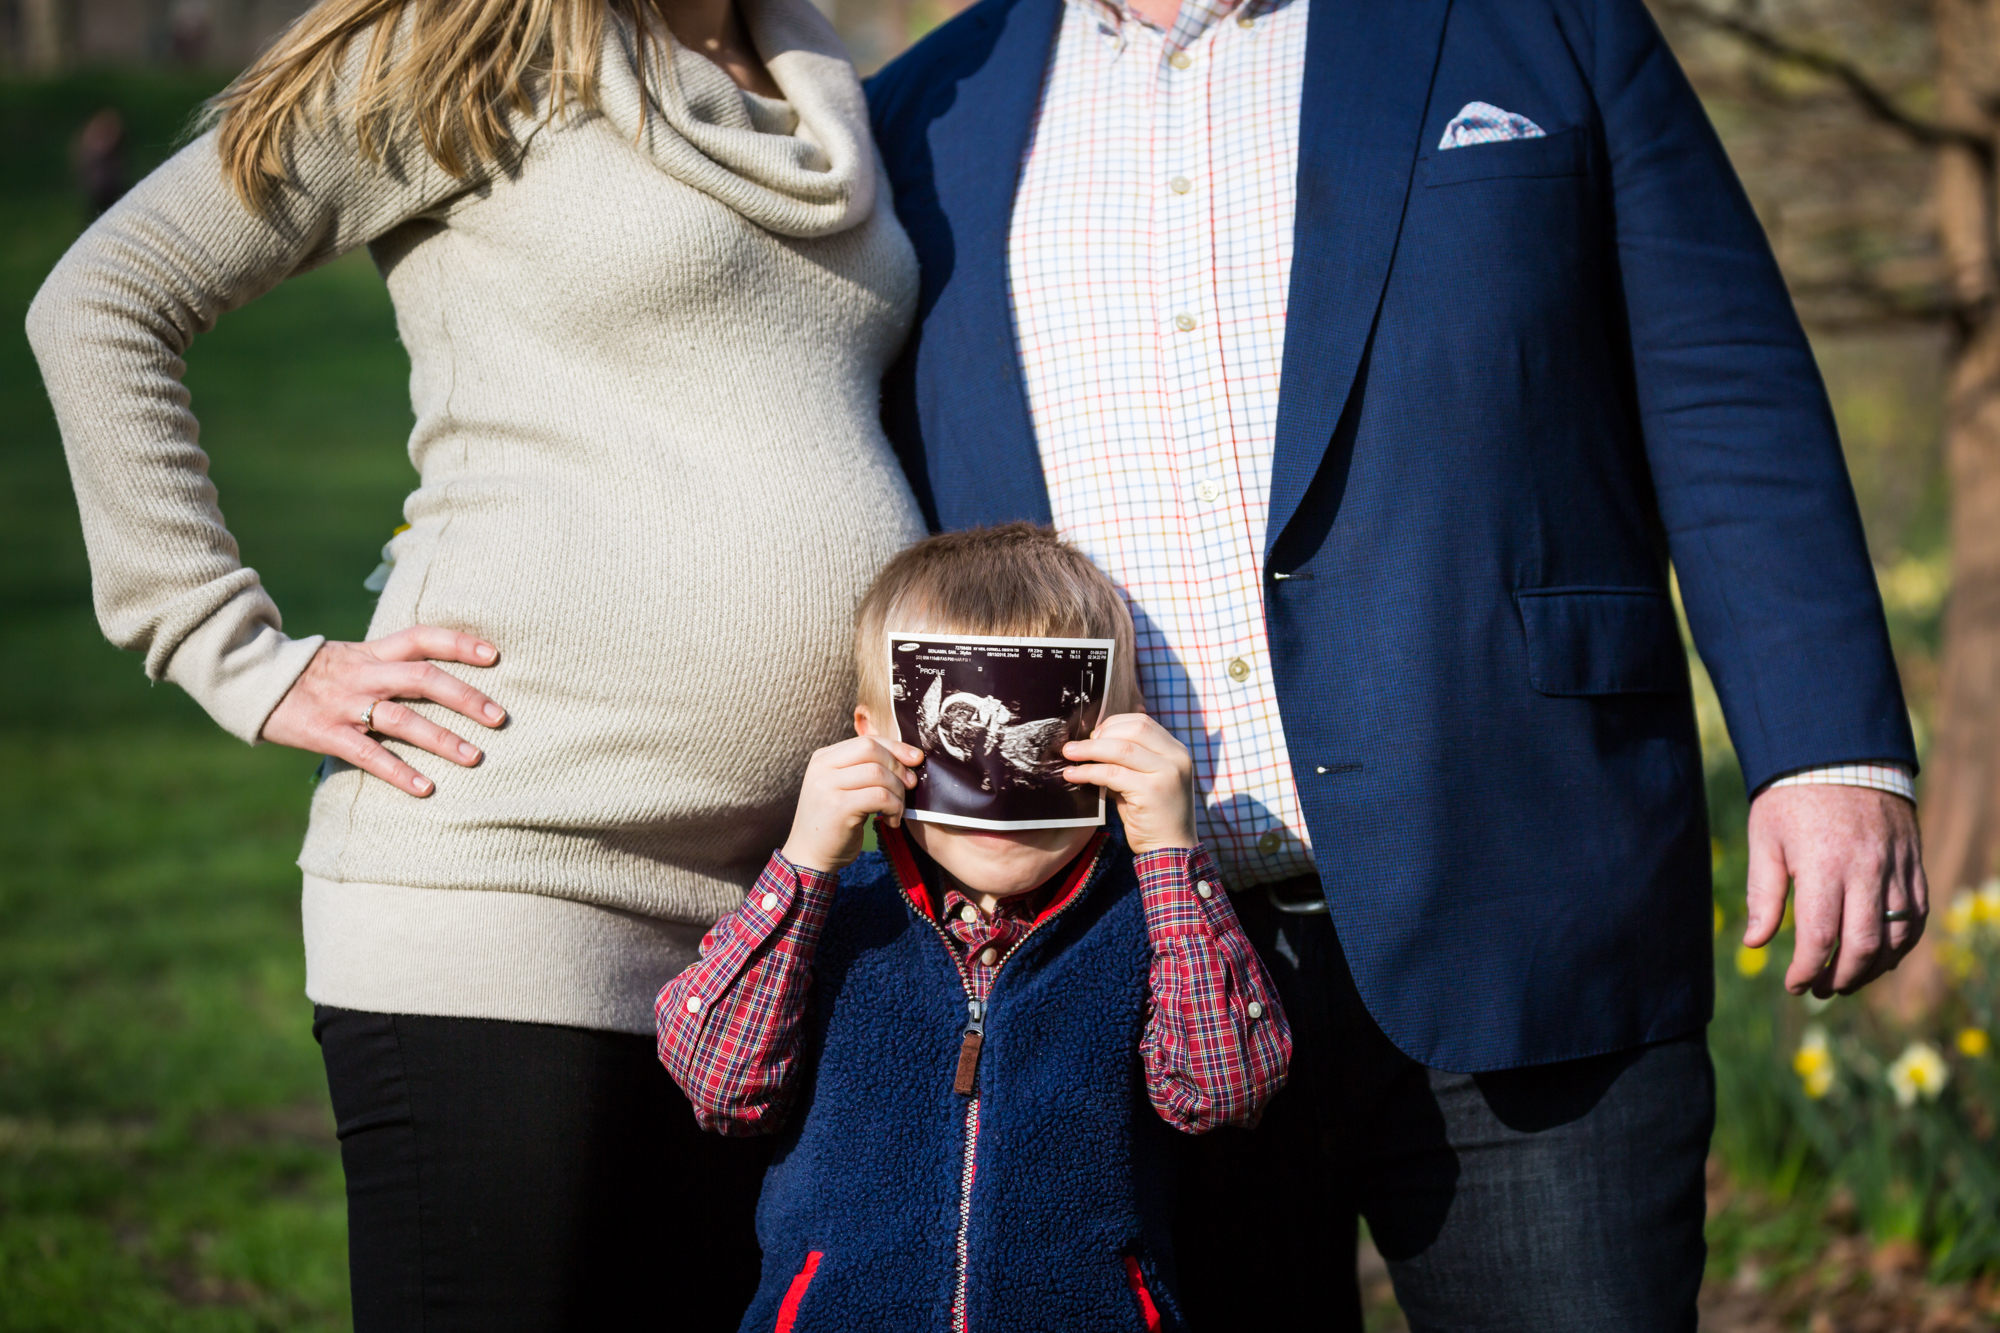 Family with child with sonogram photo for an article on the best family portrait poses